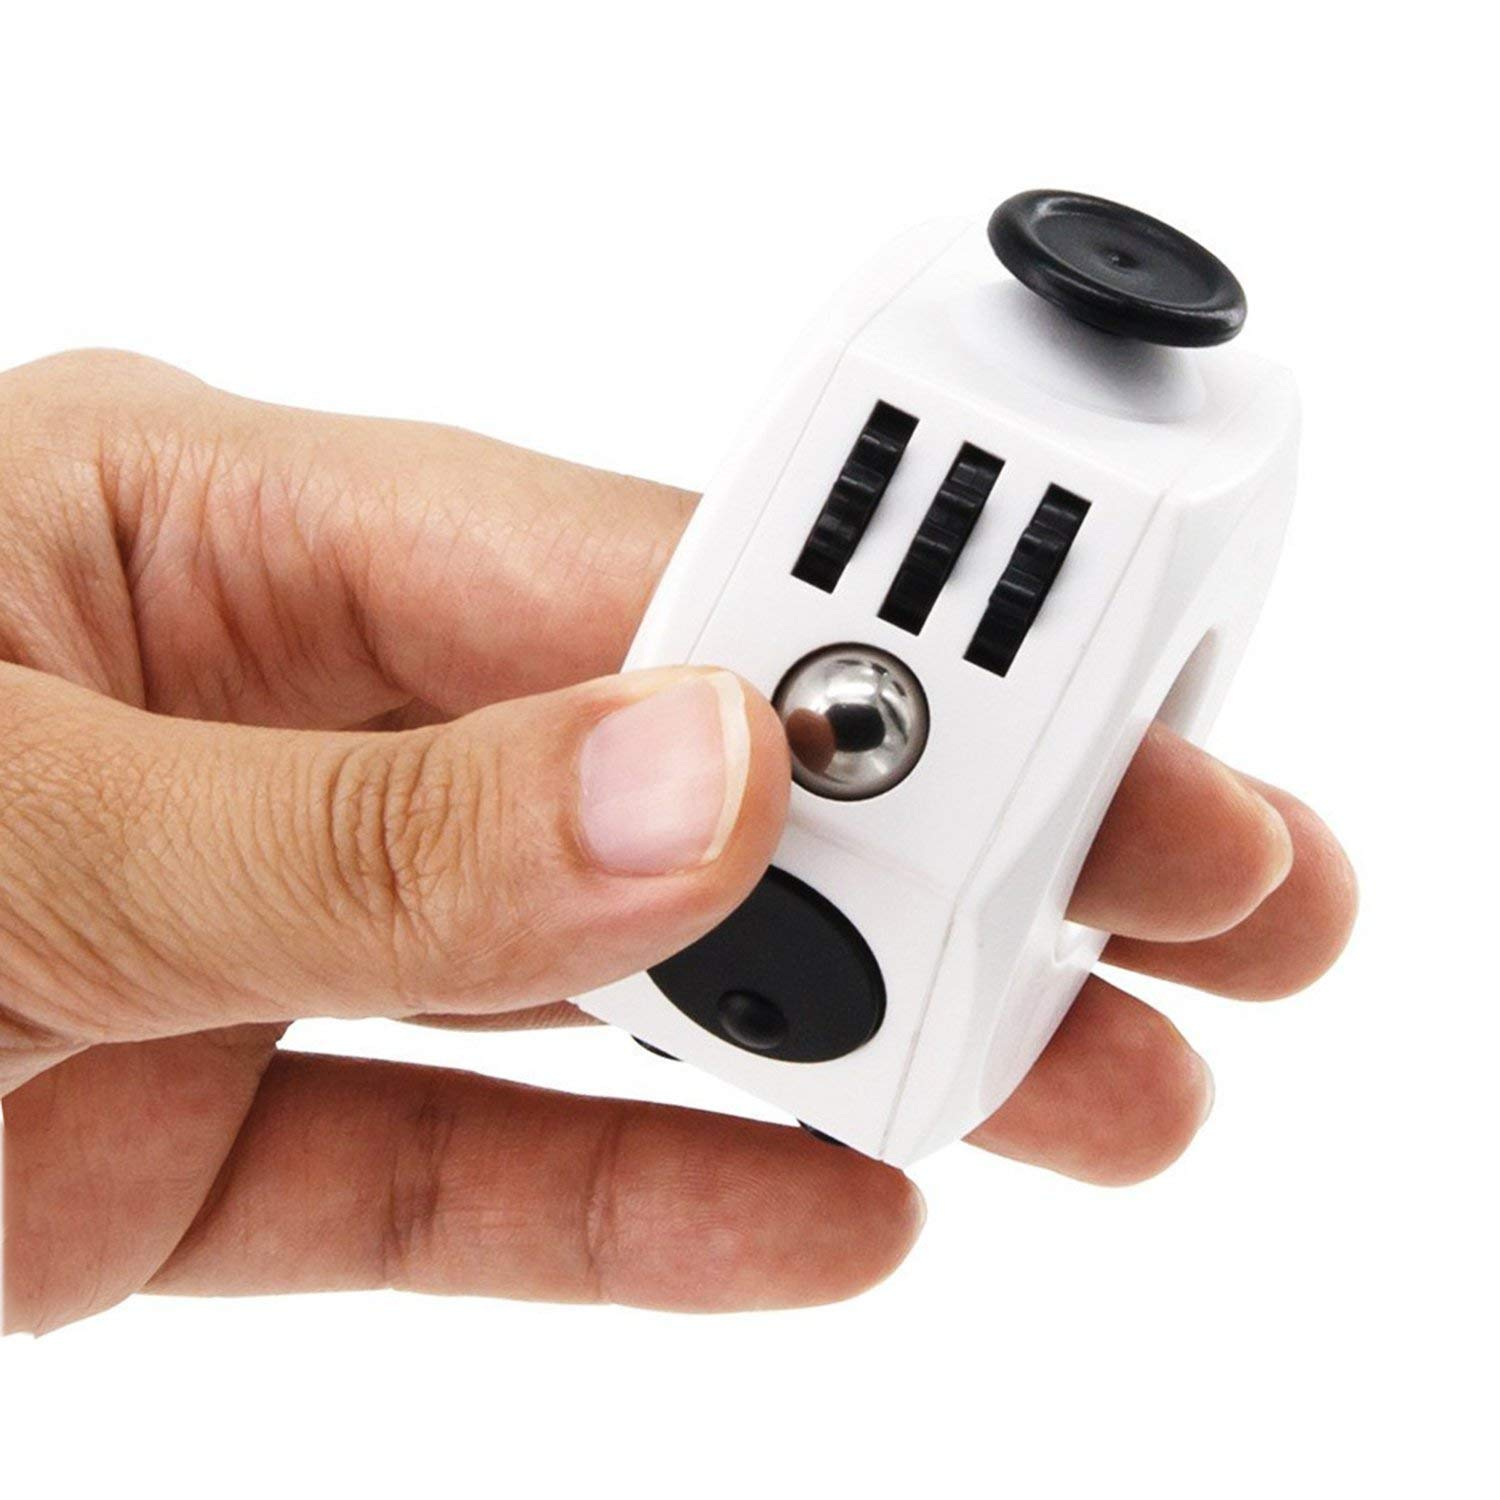 Chemstar Fidget Cube Decompression Ring Anxiety Cube Toy Relieves Stress and Anxiety and Relax for Children and Adults Black